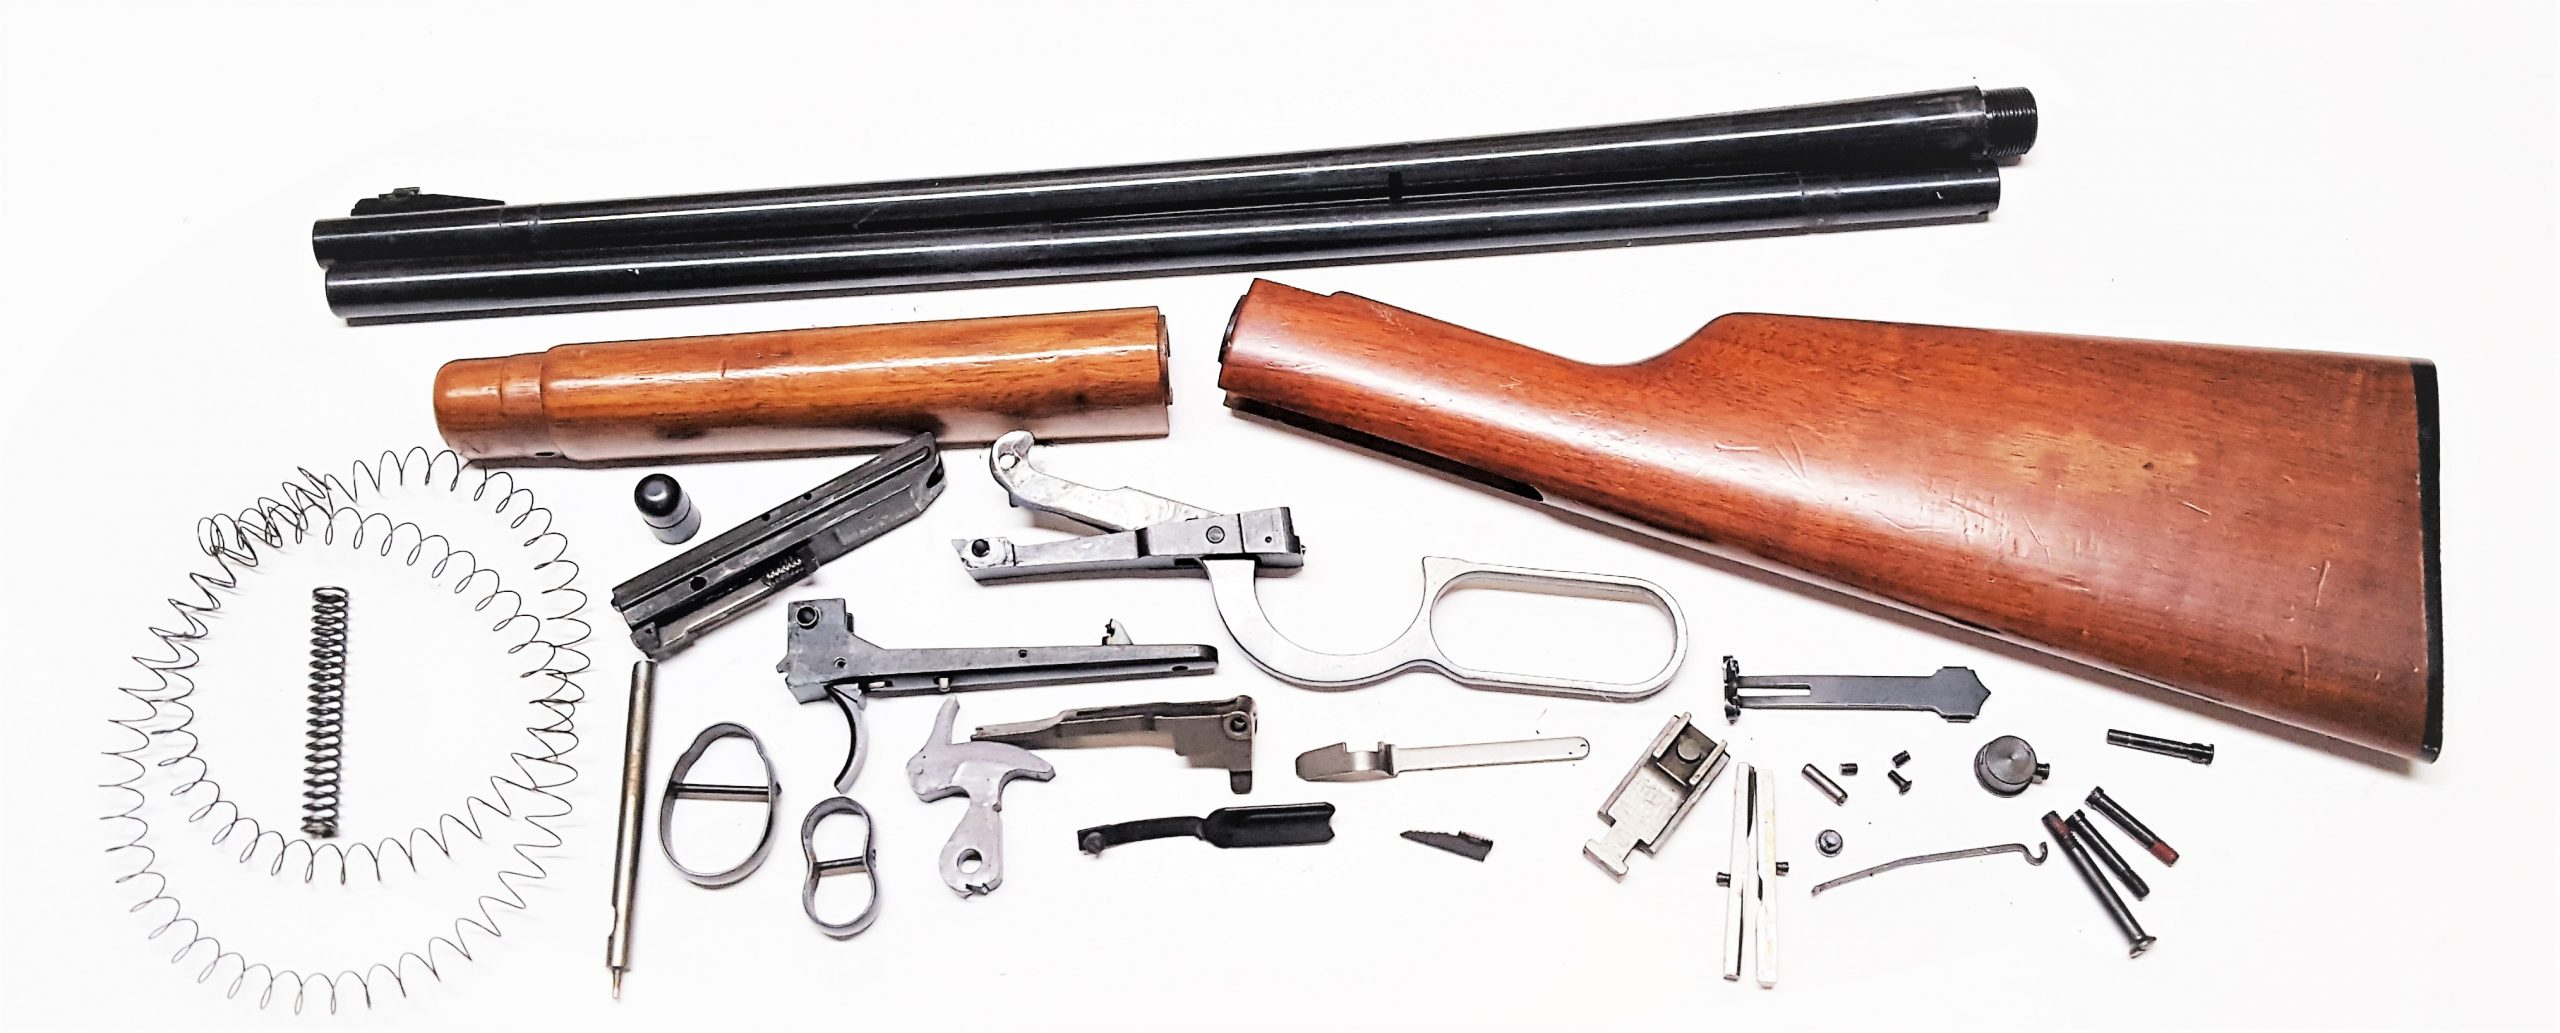 Completely disassembled Winchester Model 1894